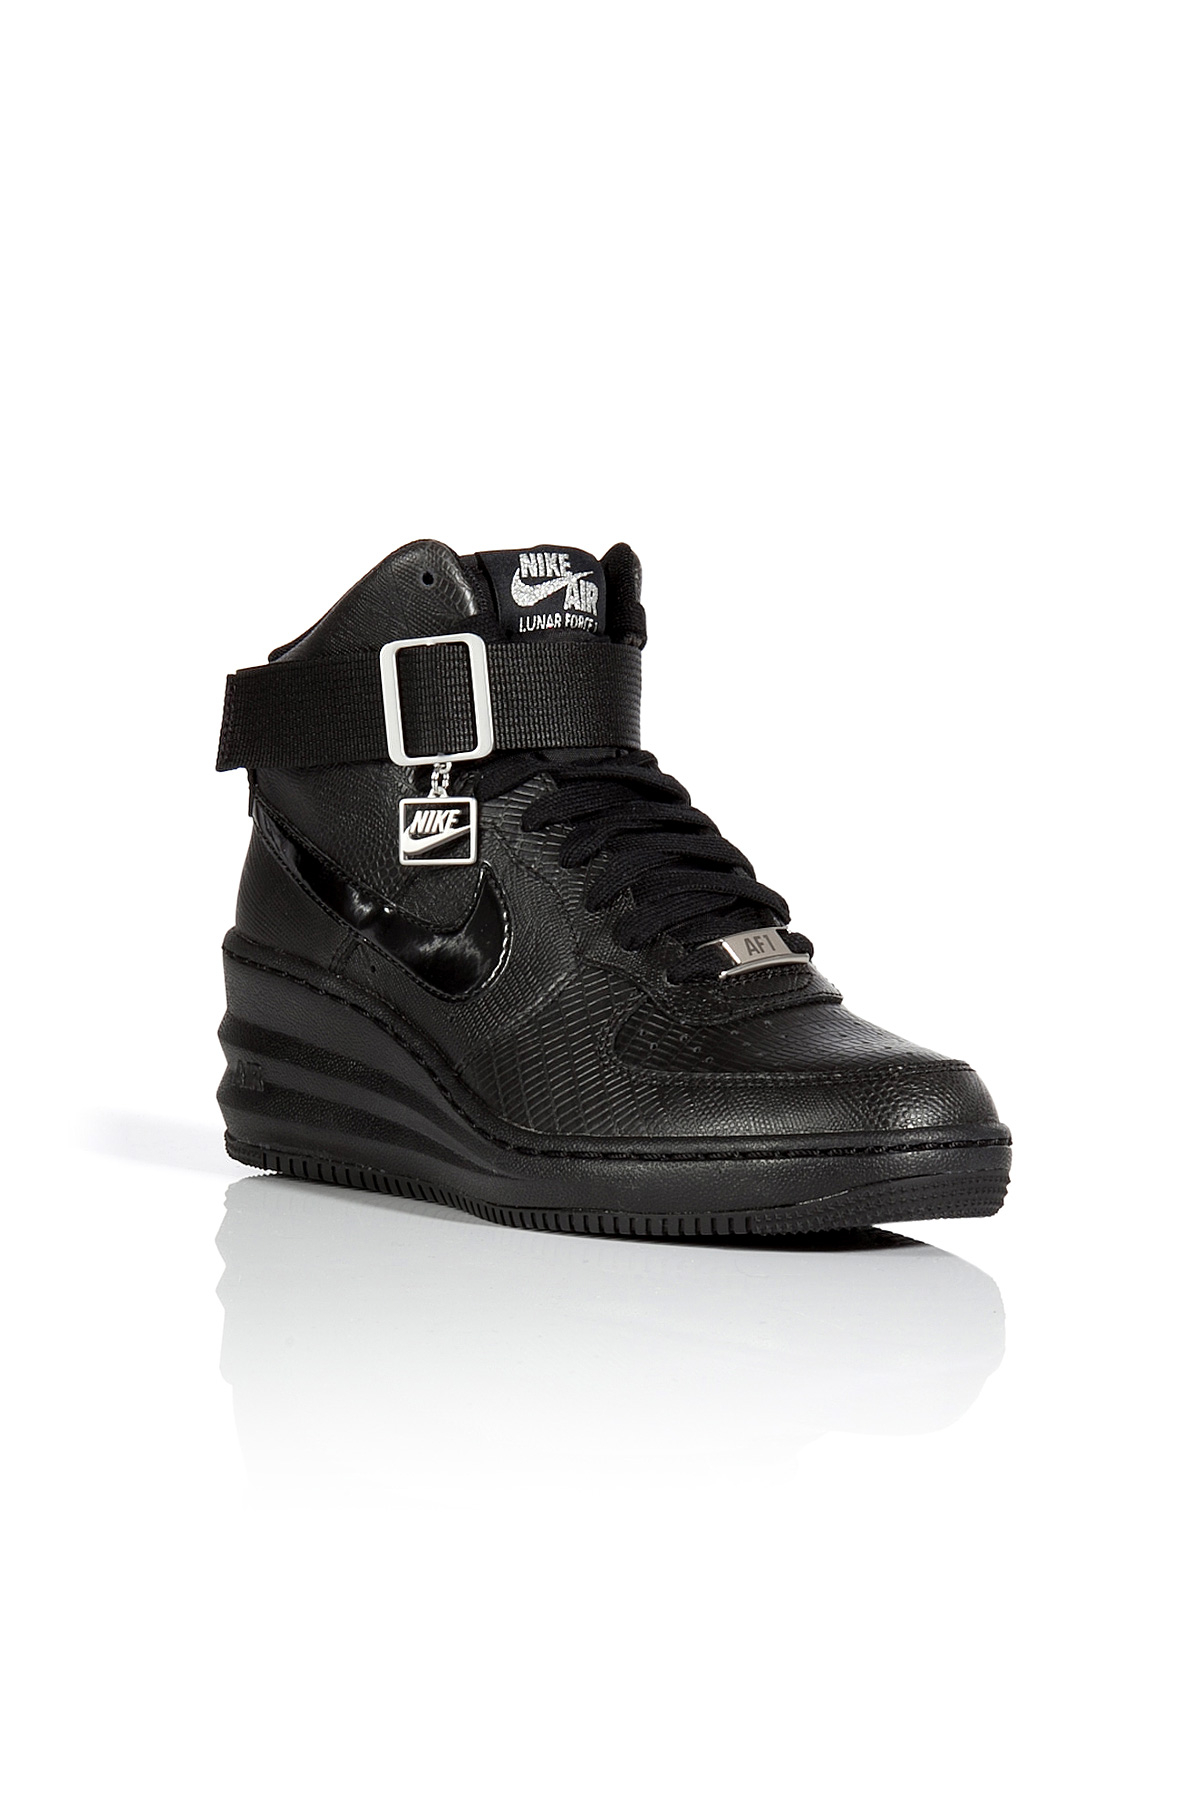 Image 1 - Nike - Dunk Sky Hi - Baskets compensées - Noir ... |Wedges Sneakers Nike Black